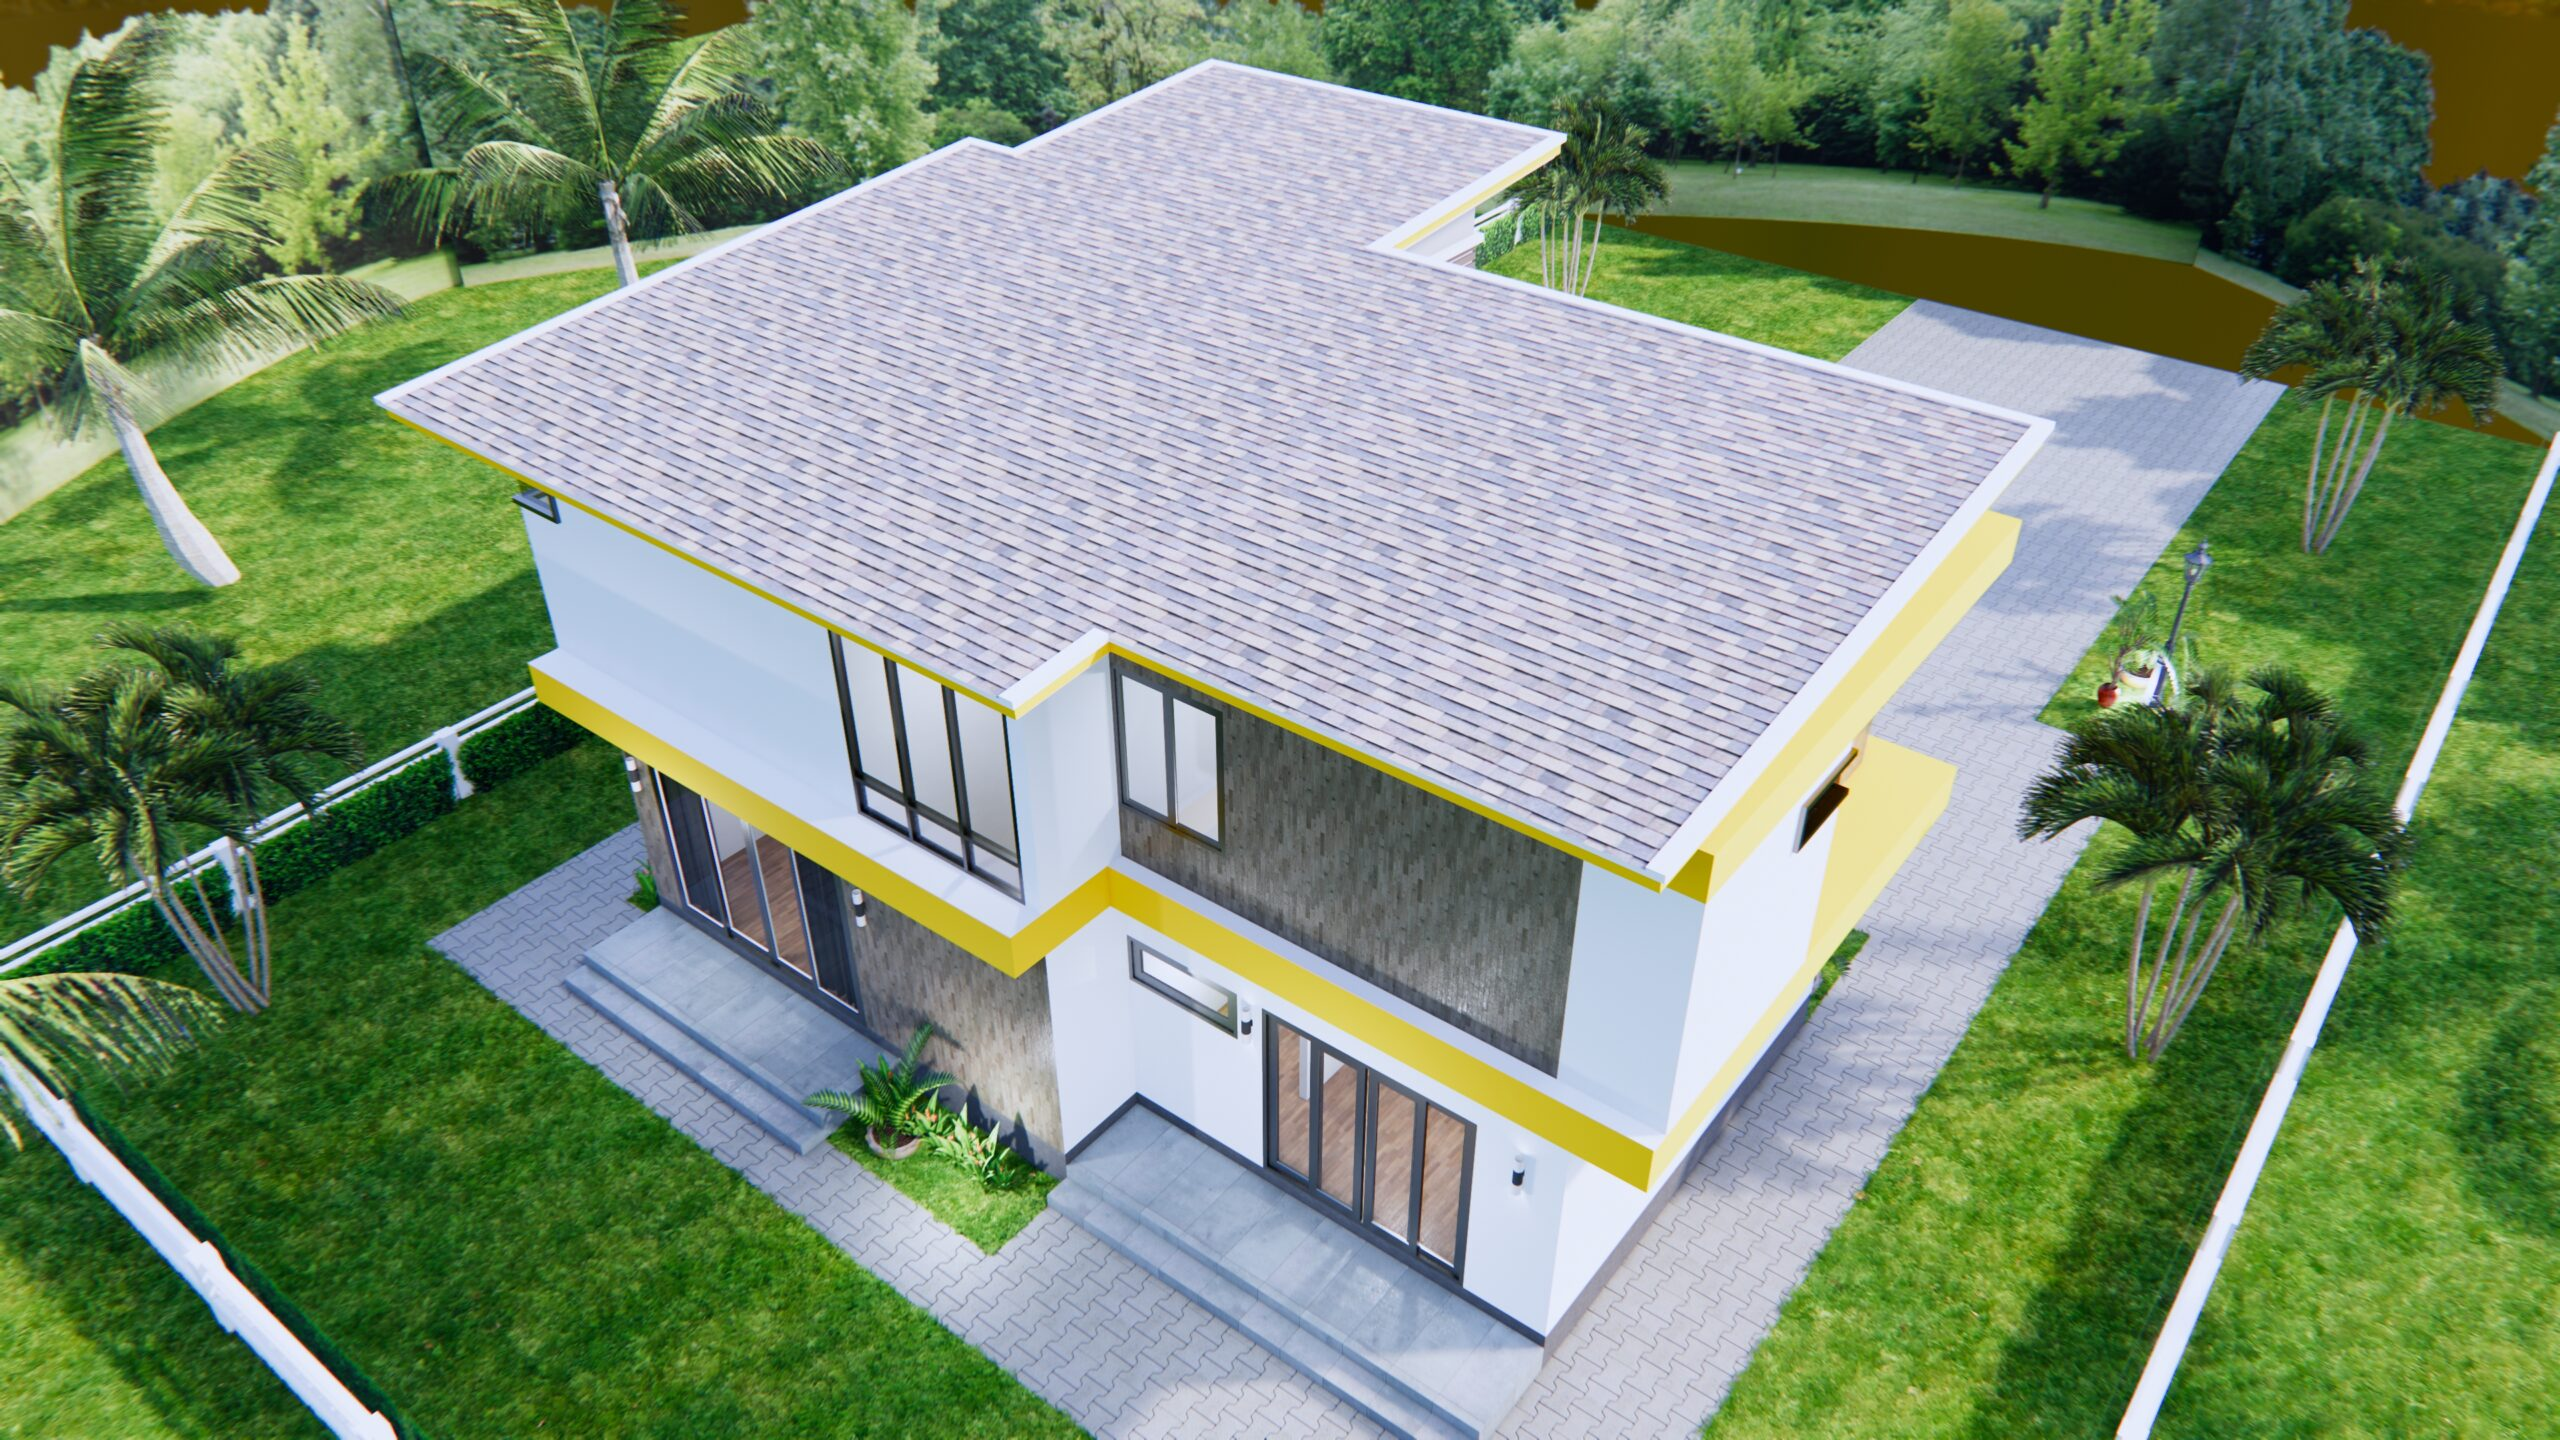 House Design 12.4x11 Meter 41x35 Feet 4 Beds 7